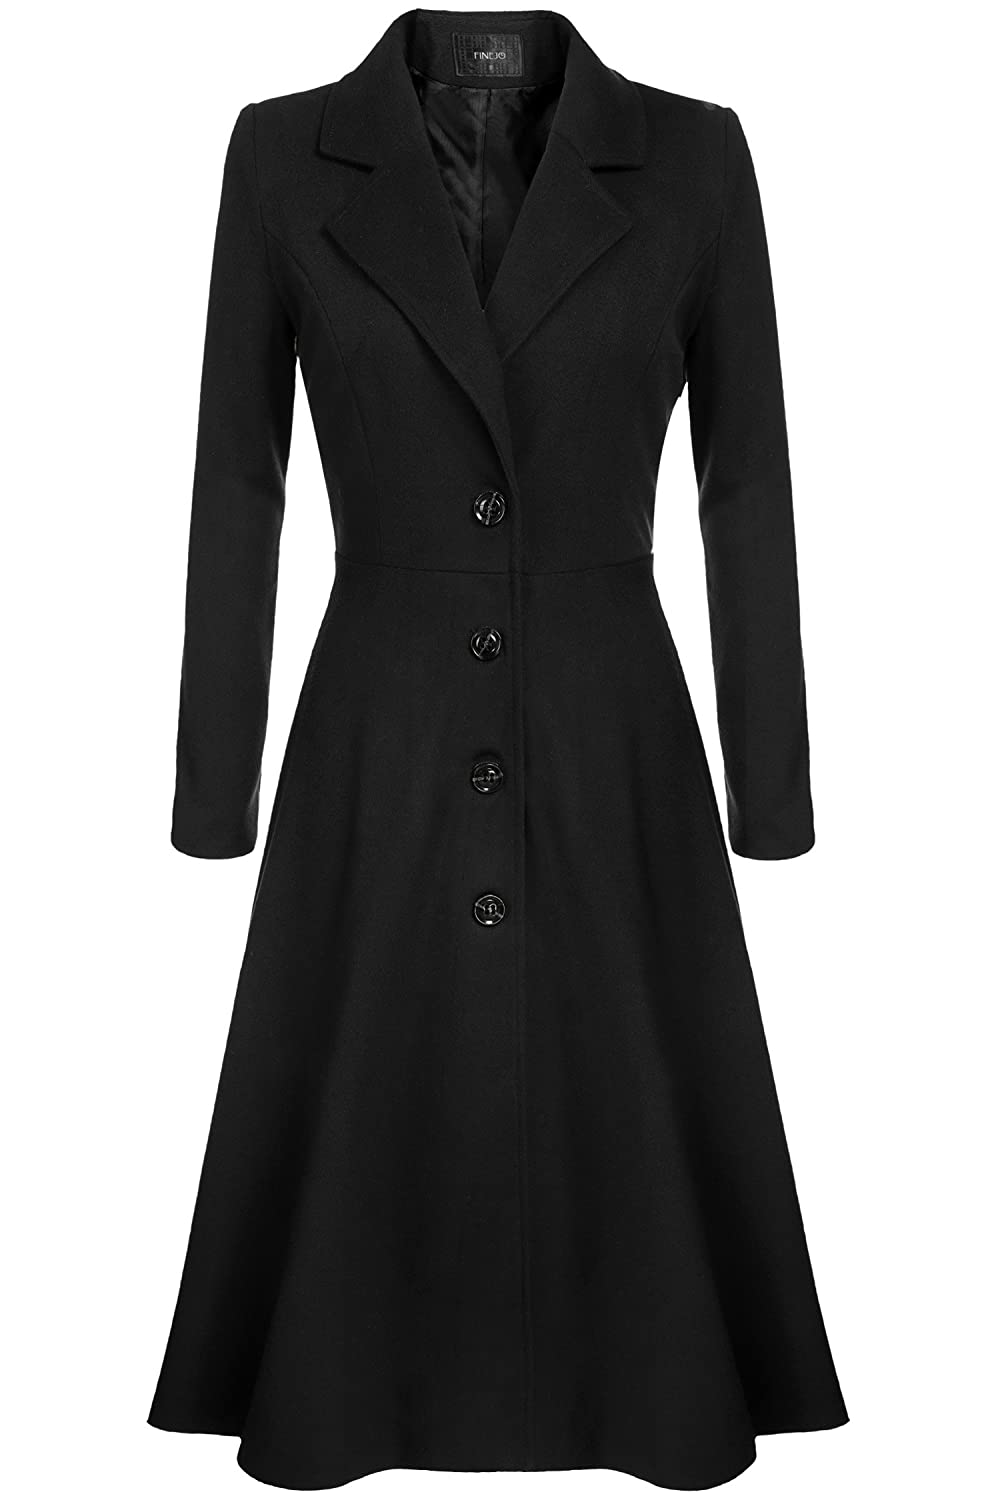 1940s Coats & Jackets Fashion History Kize Women Single Breasted Overcoat Long Trench Coat Outerwear plus size $49.99 AT vintagedancer.com